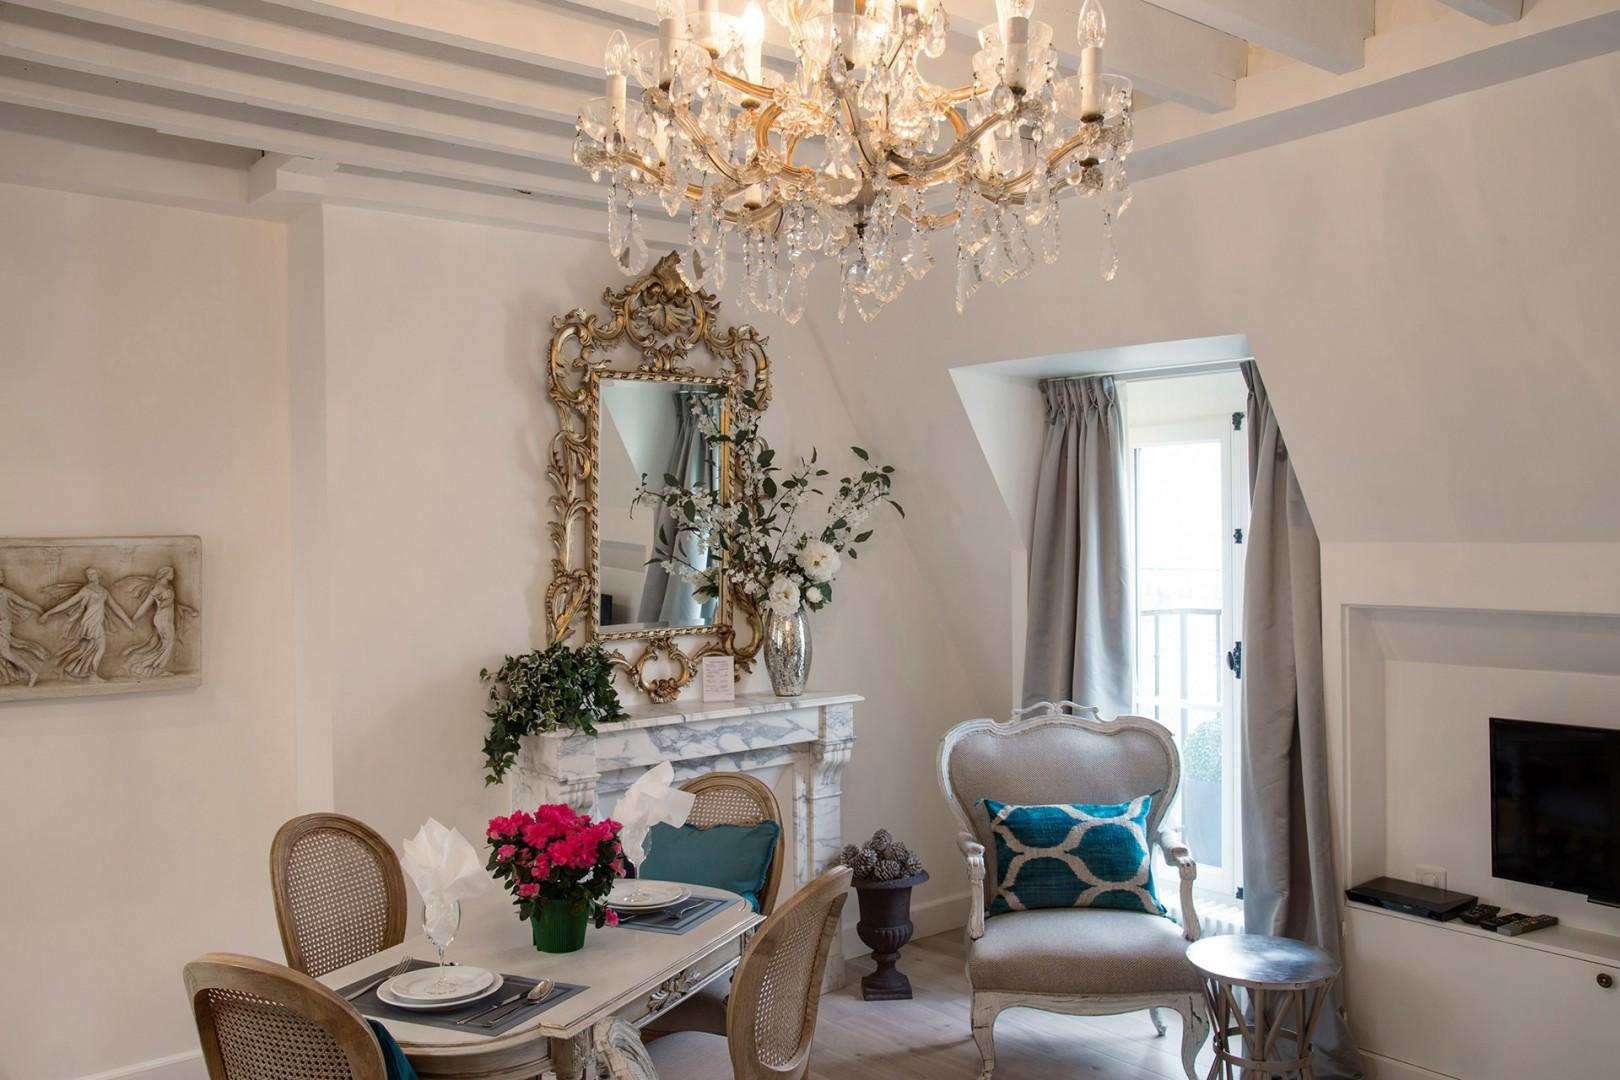 Let the Parisian style surround you in the beautiful living room!